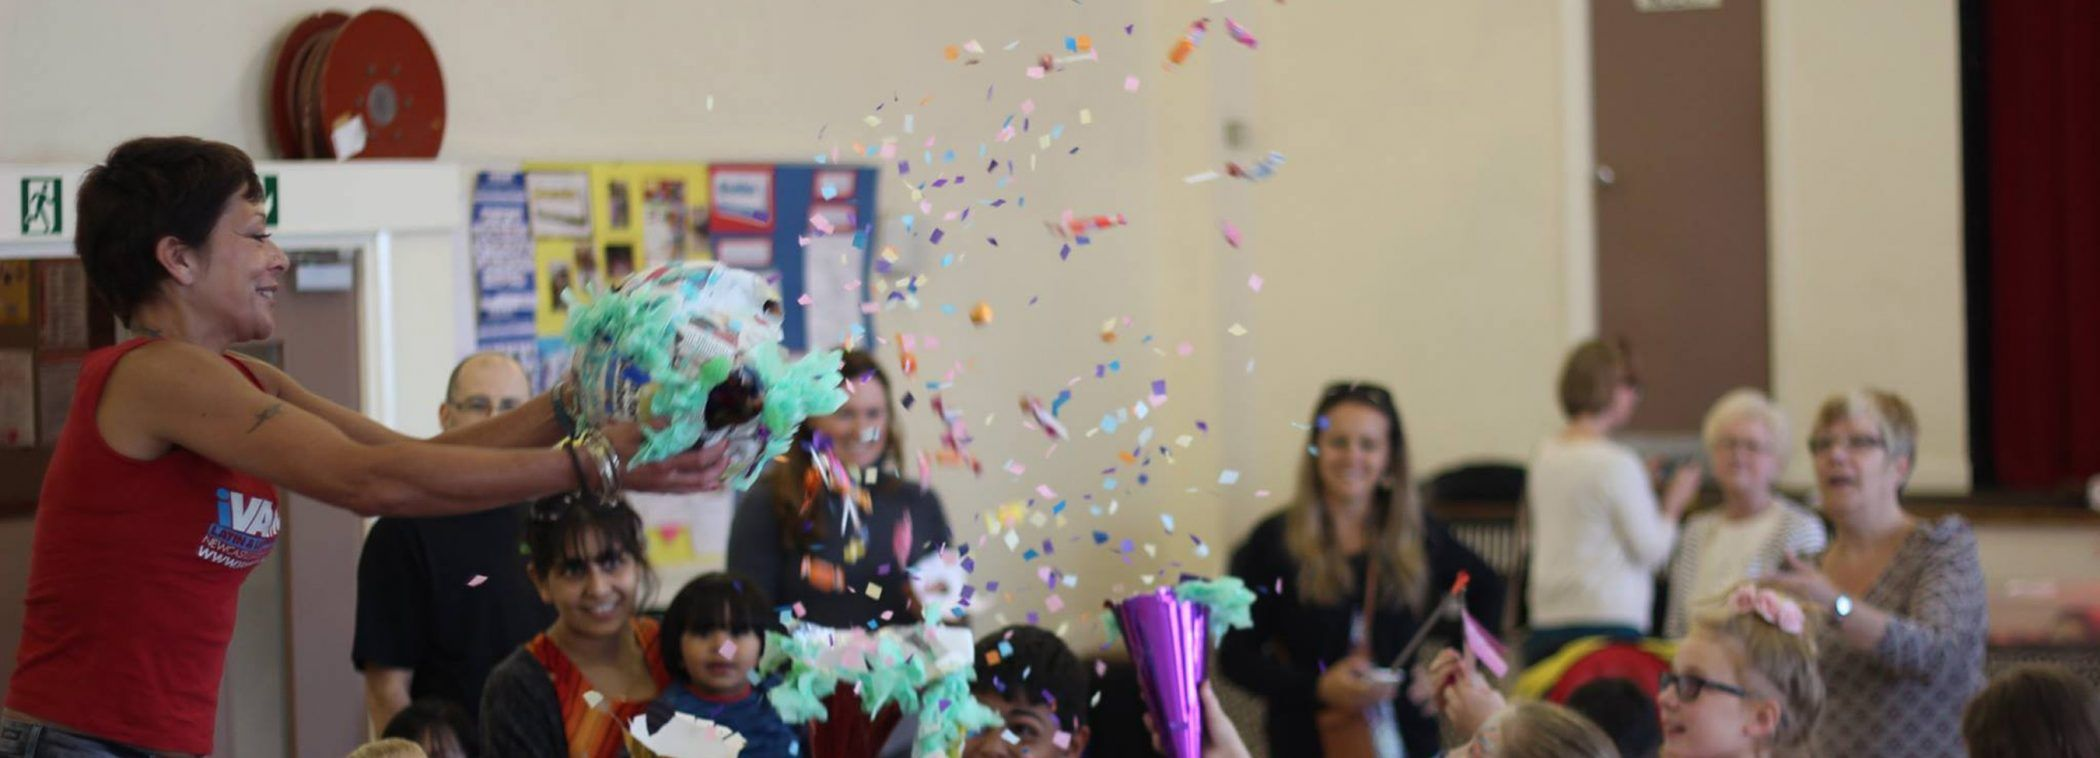 Children playing with a pinata whilst parents and carers look on.